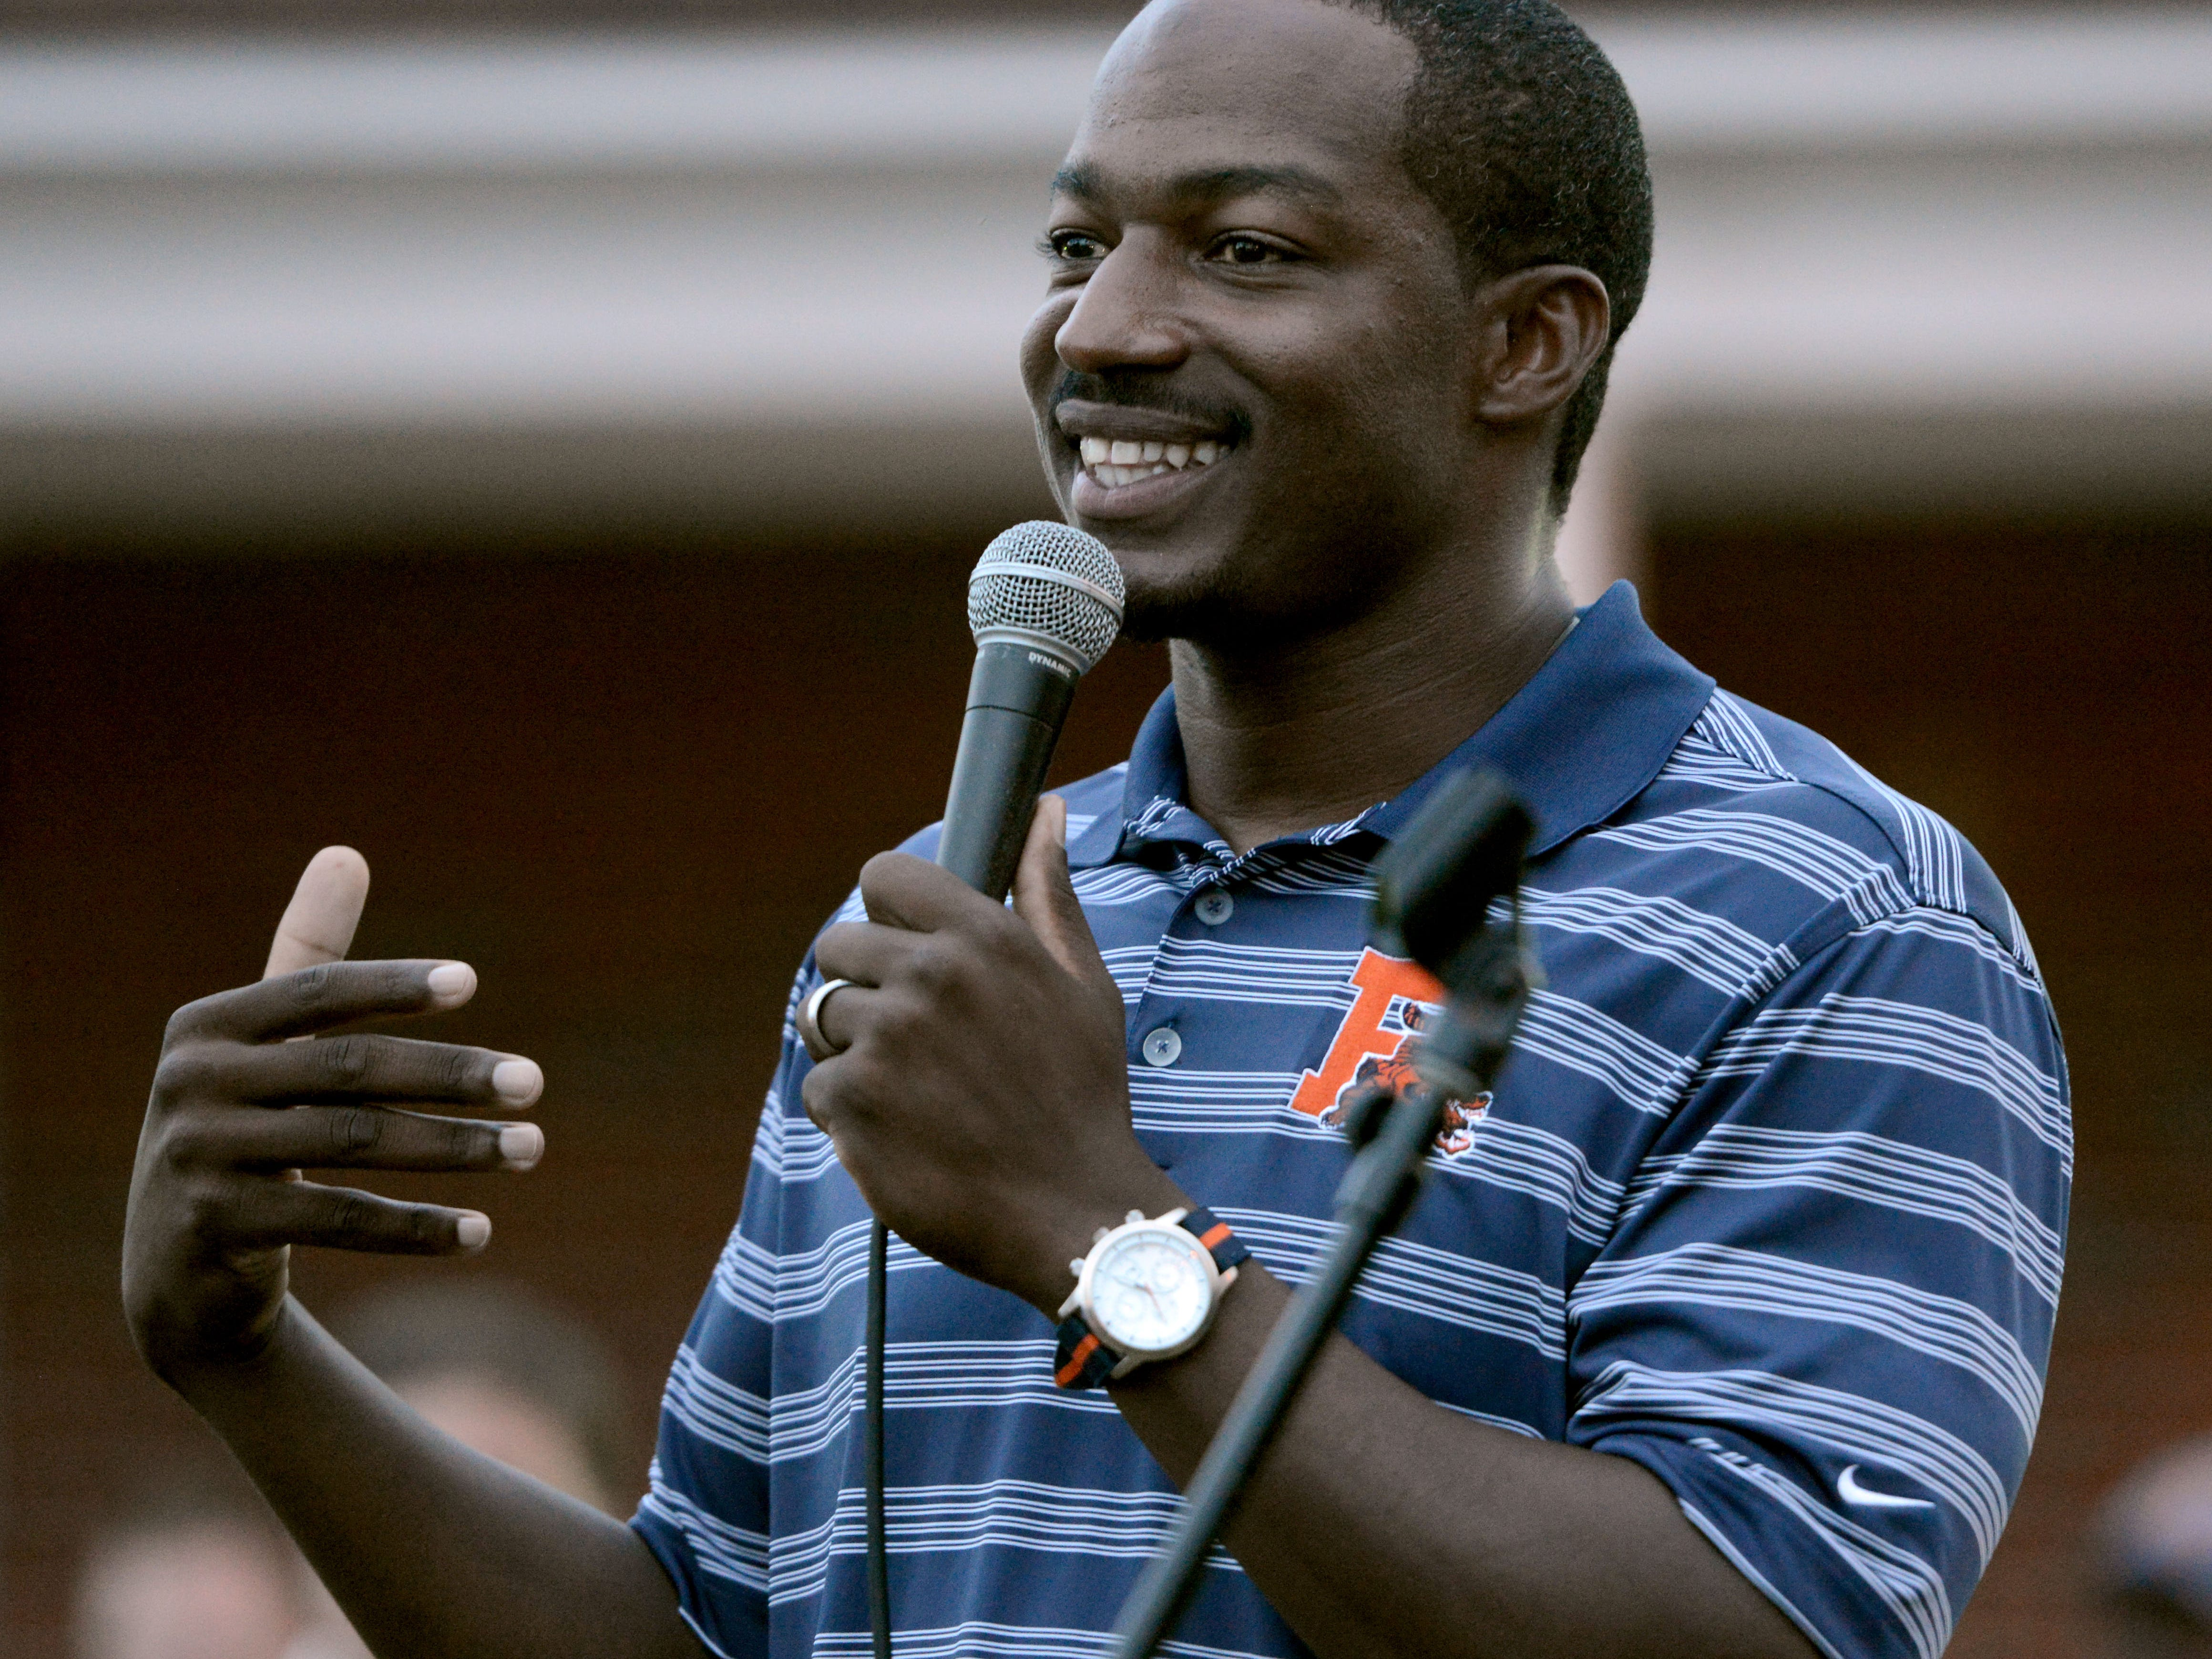 Former Escambia High coach Willie Spears who was fired in September and has worked since February as co-host on the new morning show, The Daily Brew on Blab-TV, will become athletic director and football coach at the Class 1A school in Washington County.